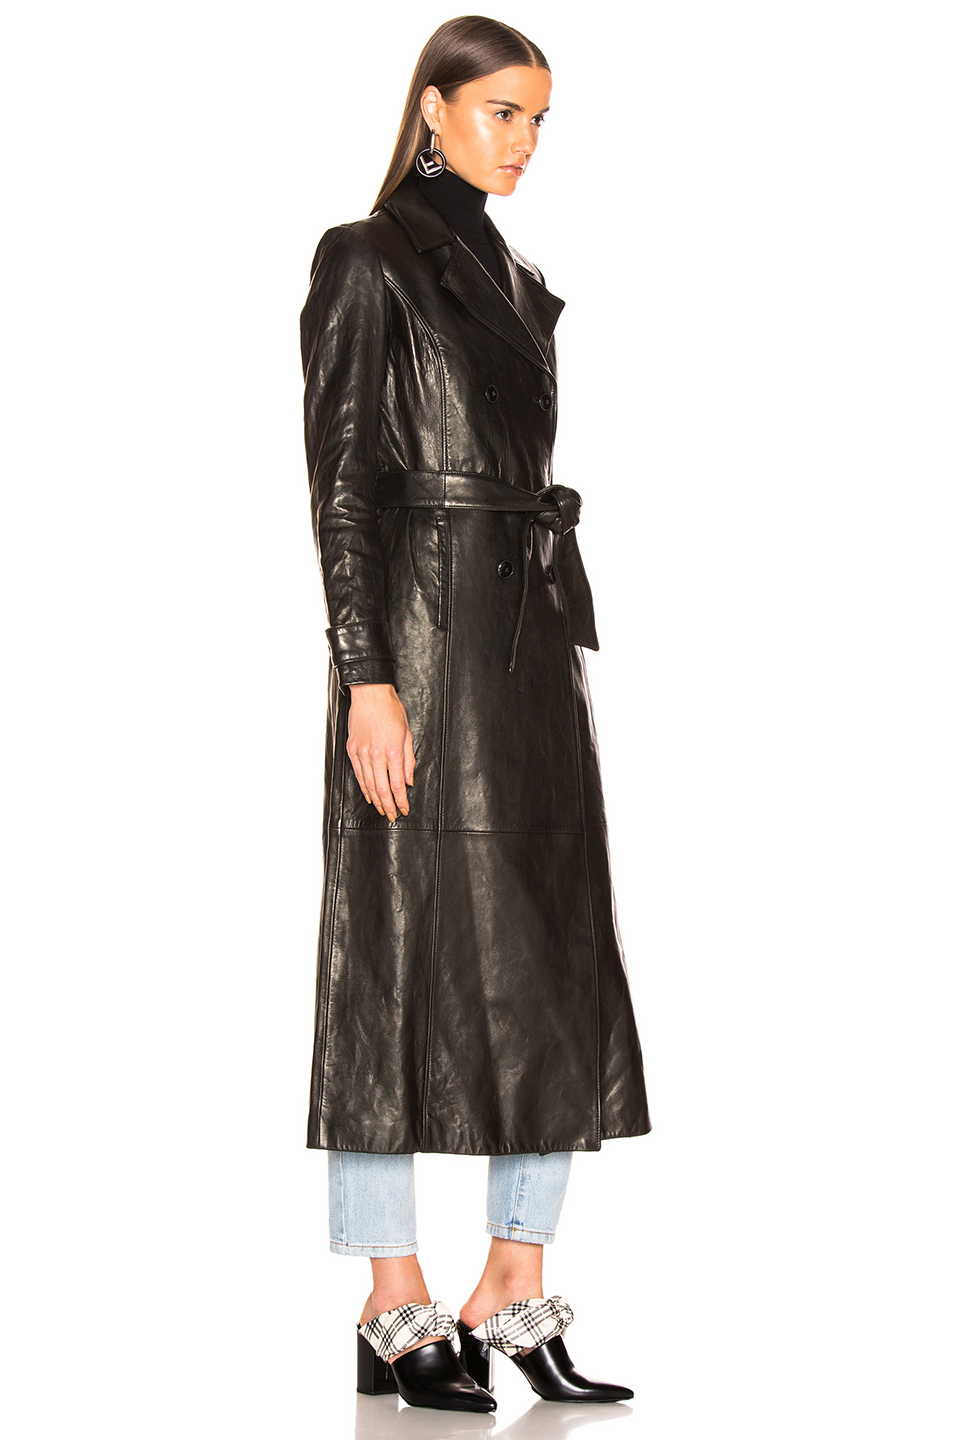 FRAME for FWRD Leather Trench Coat in Noir   FWRD